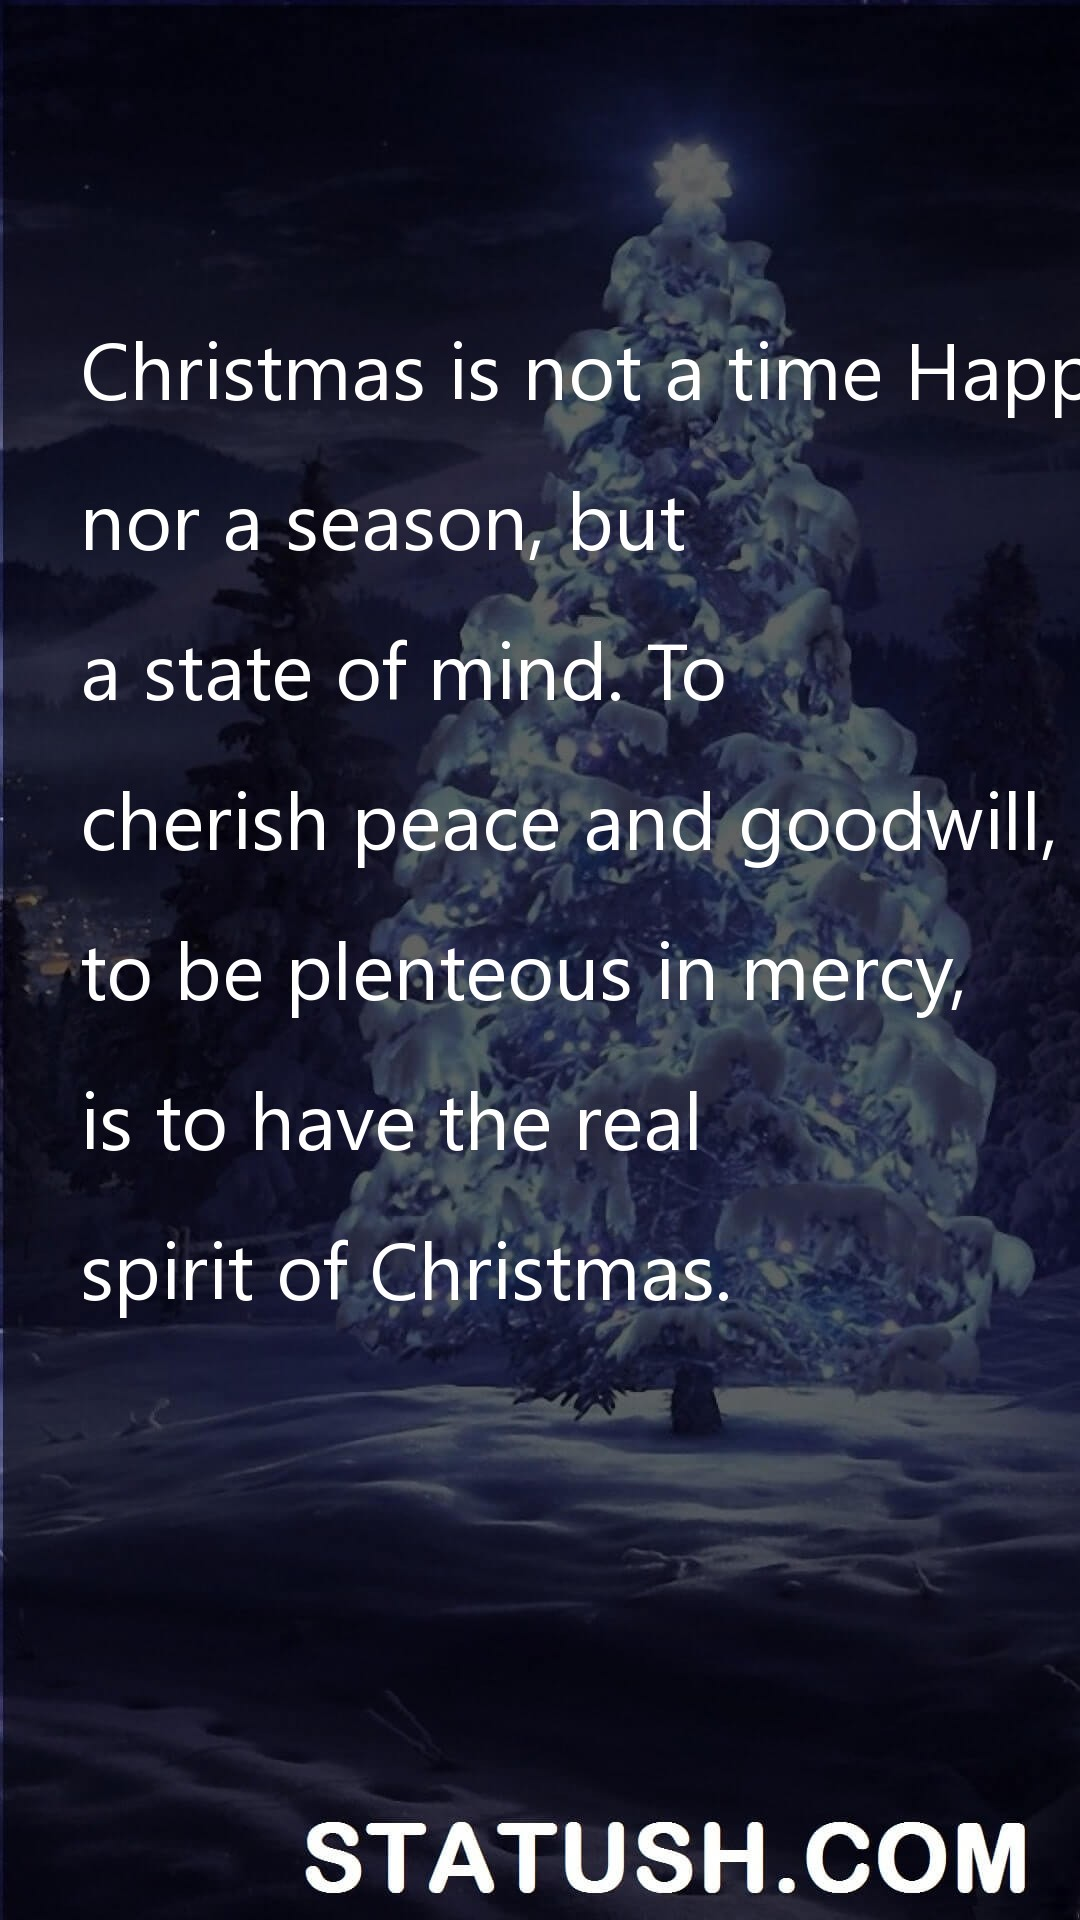 Christmas is not a time